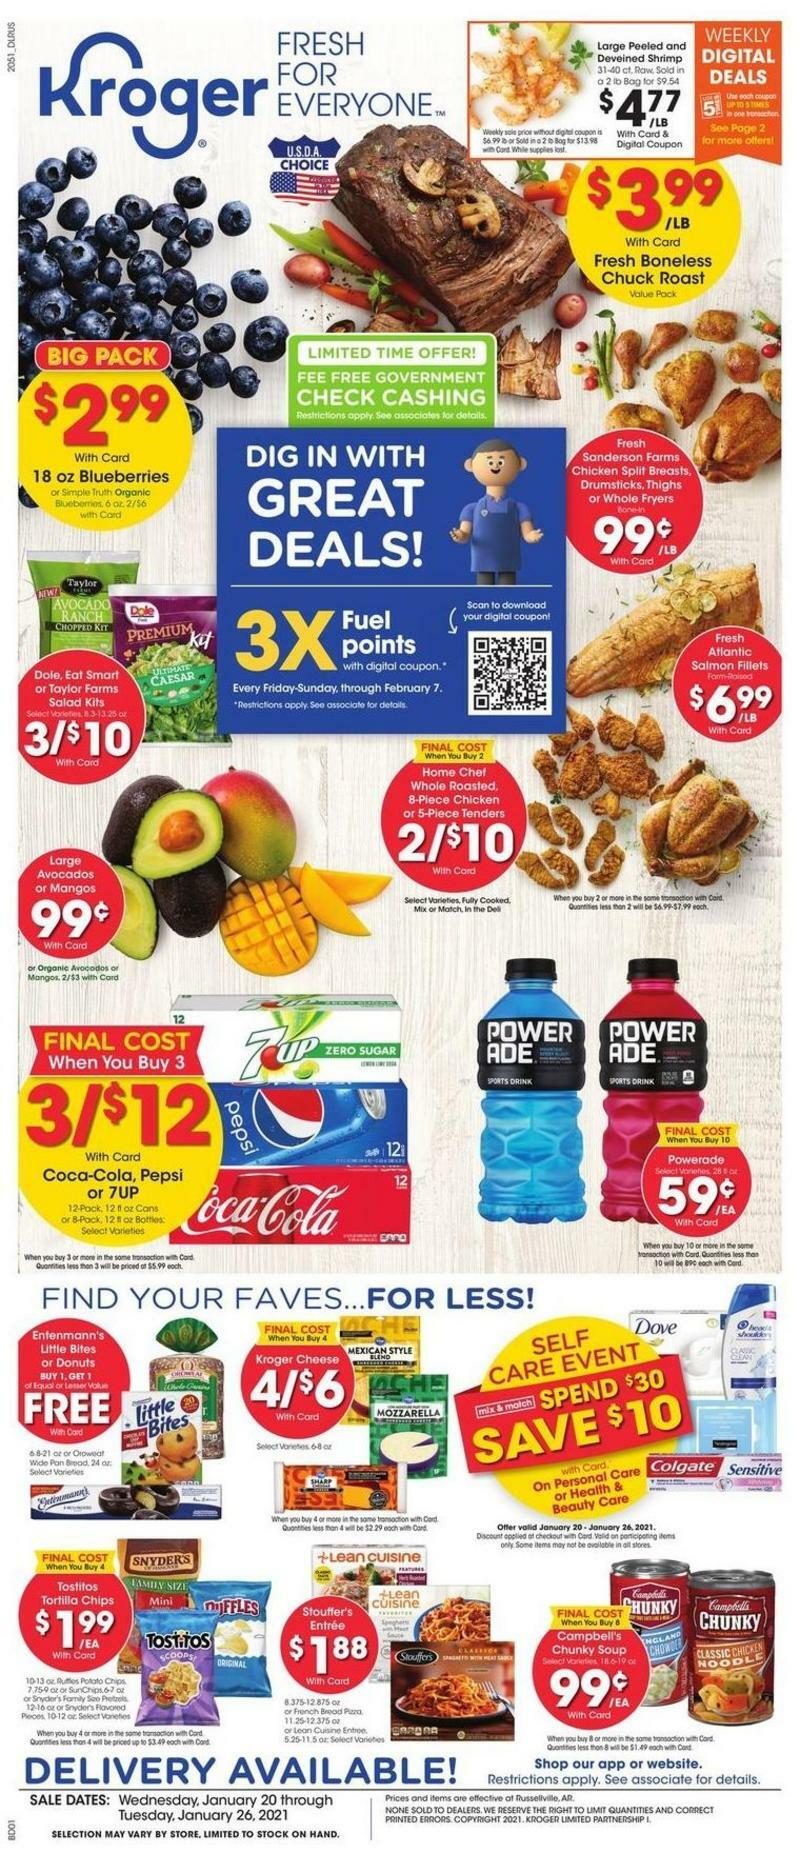 Kroger Weekly Ad from January 20